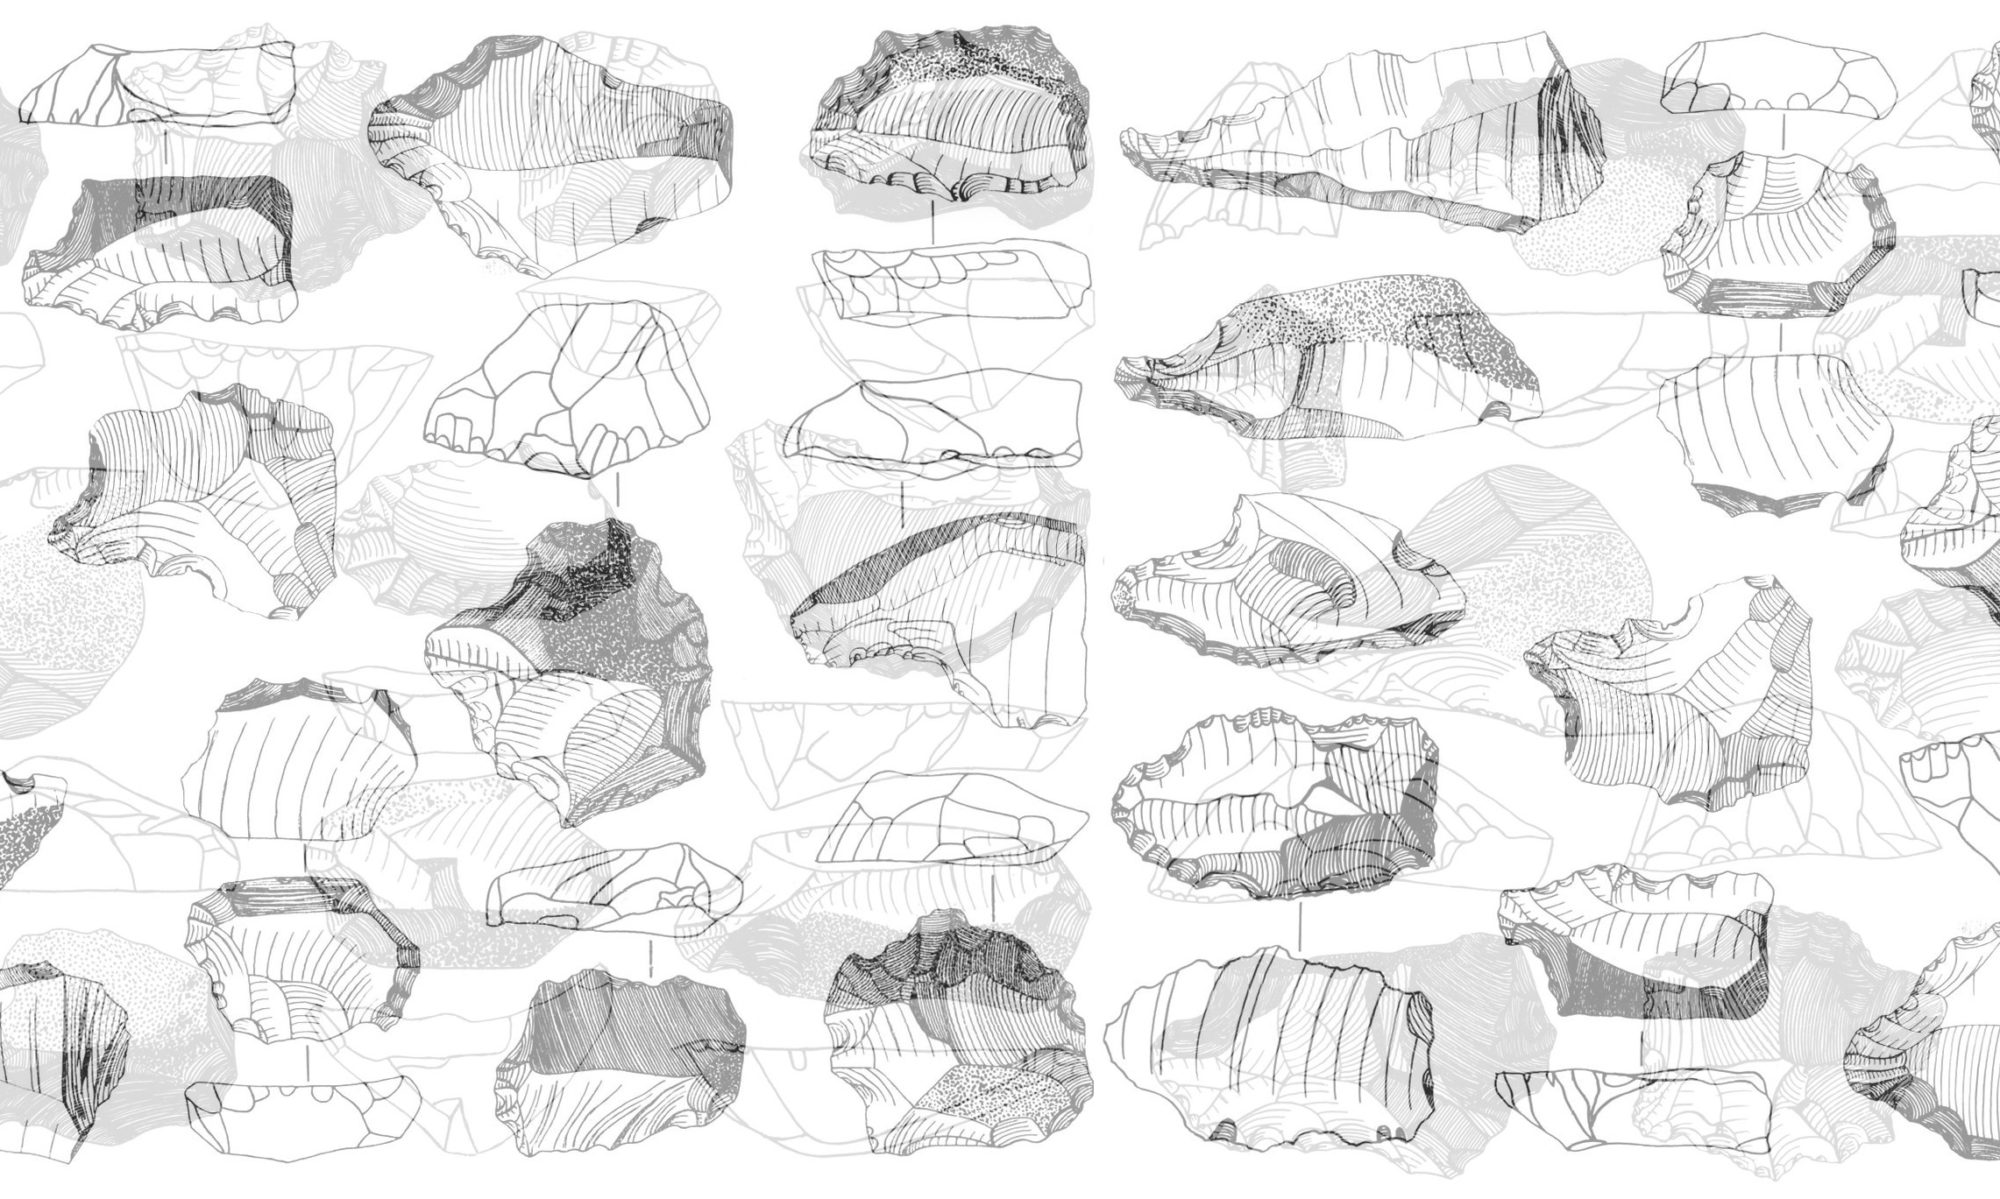 Lithic Types